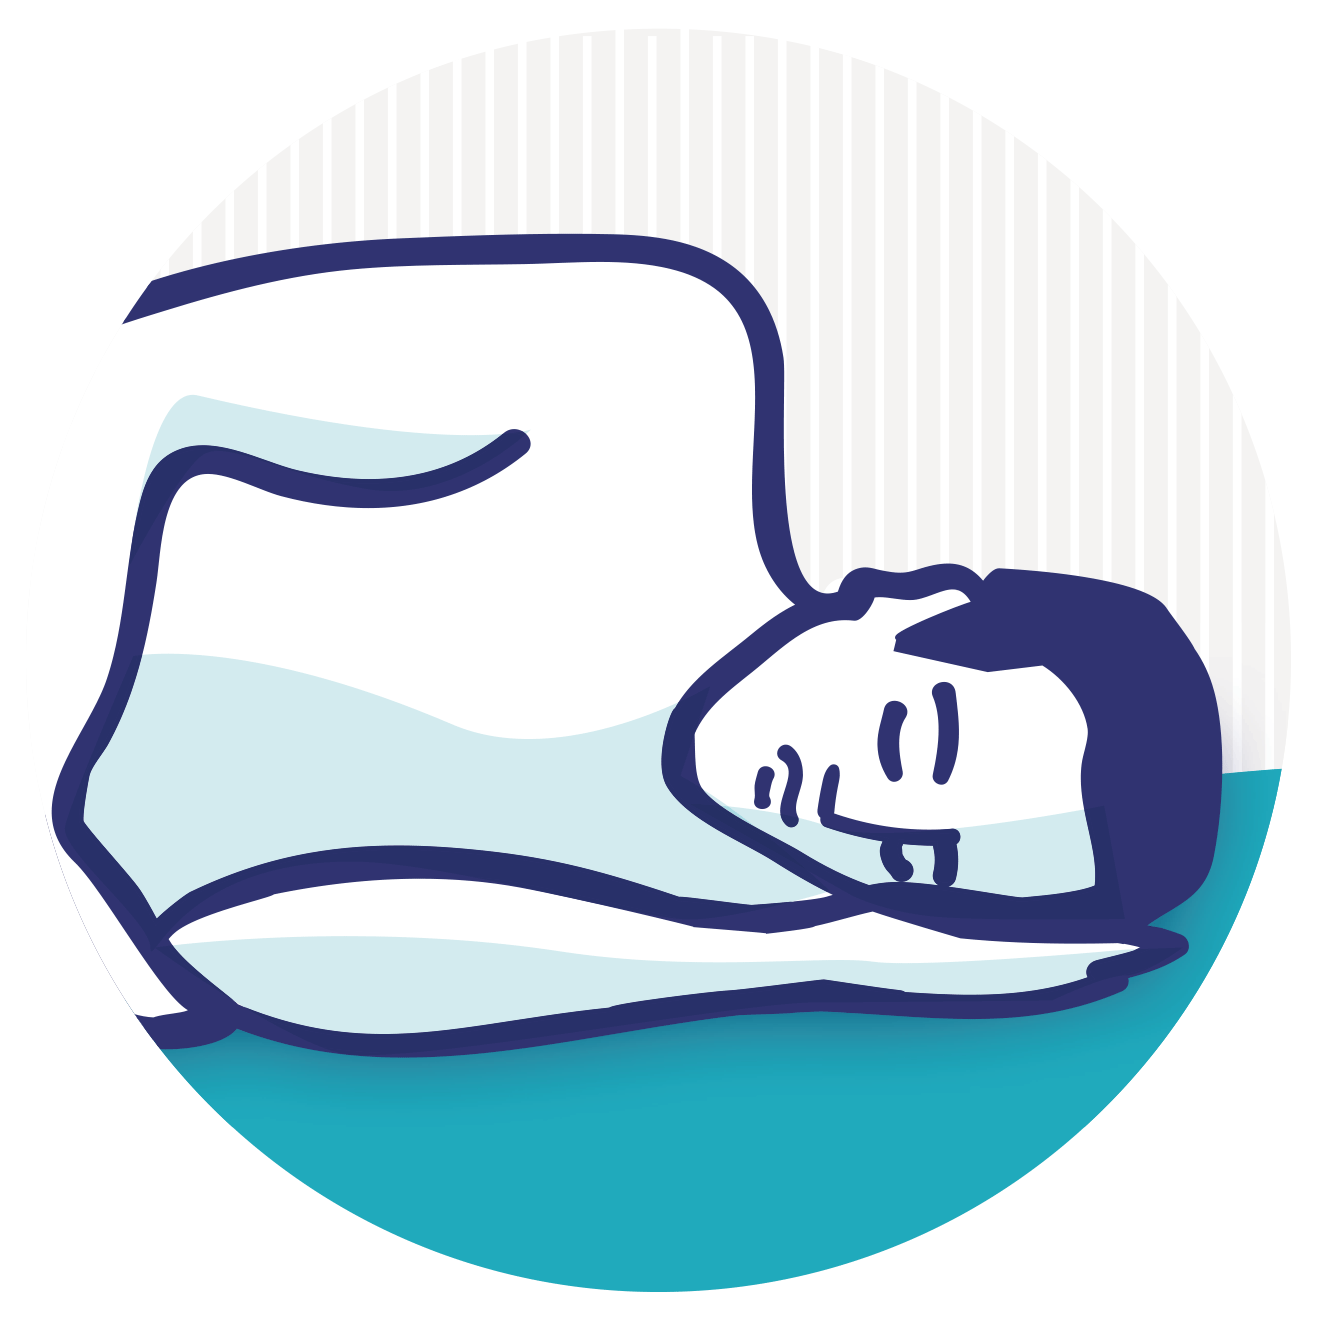 Dreaming clipart bed pillow. Free on dumielauxepices net